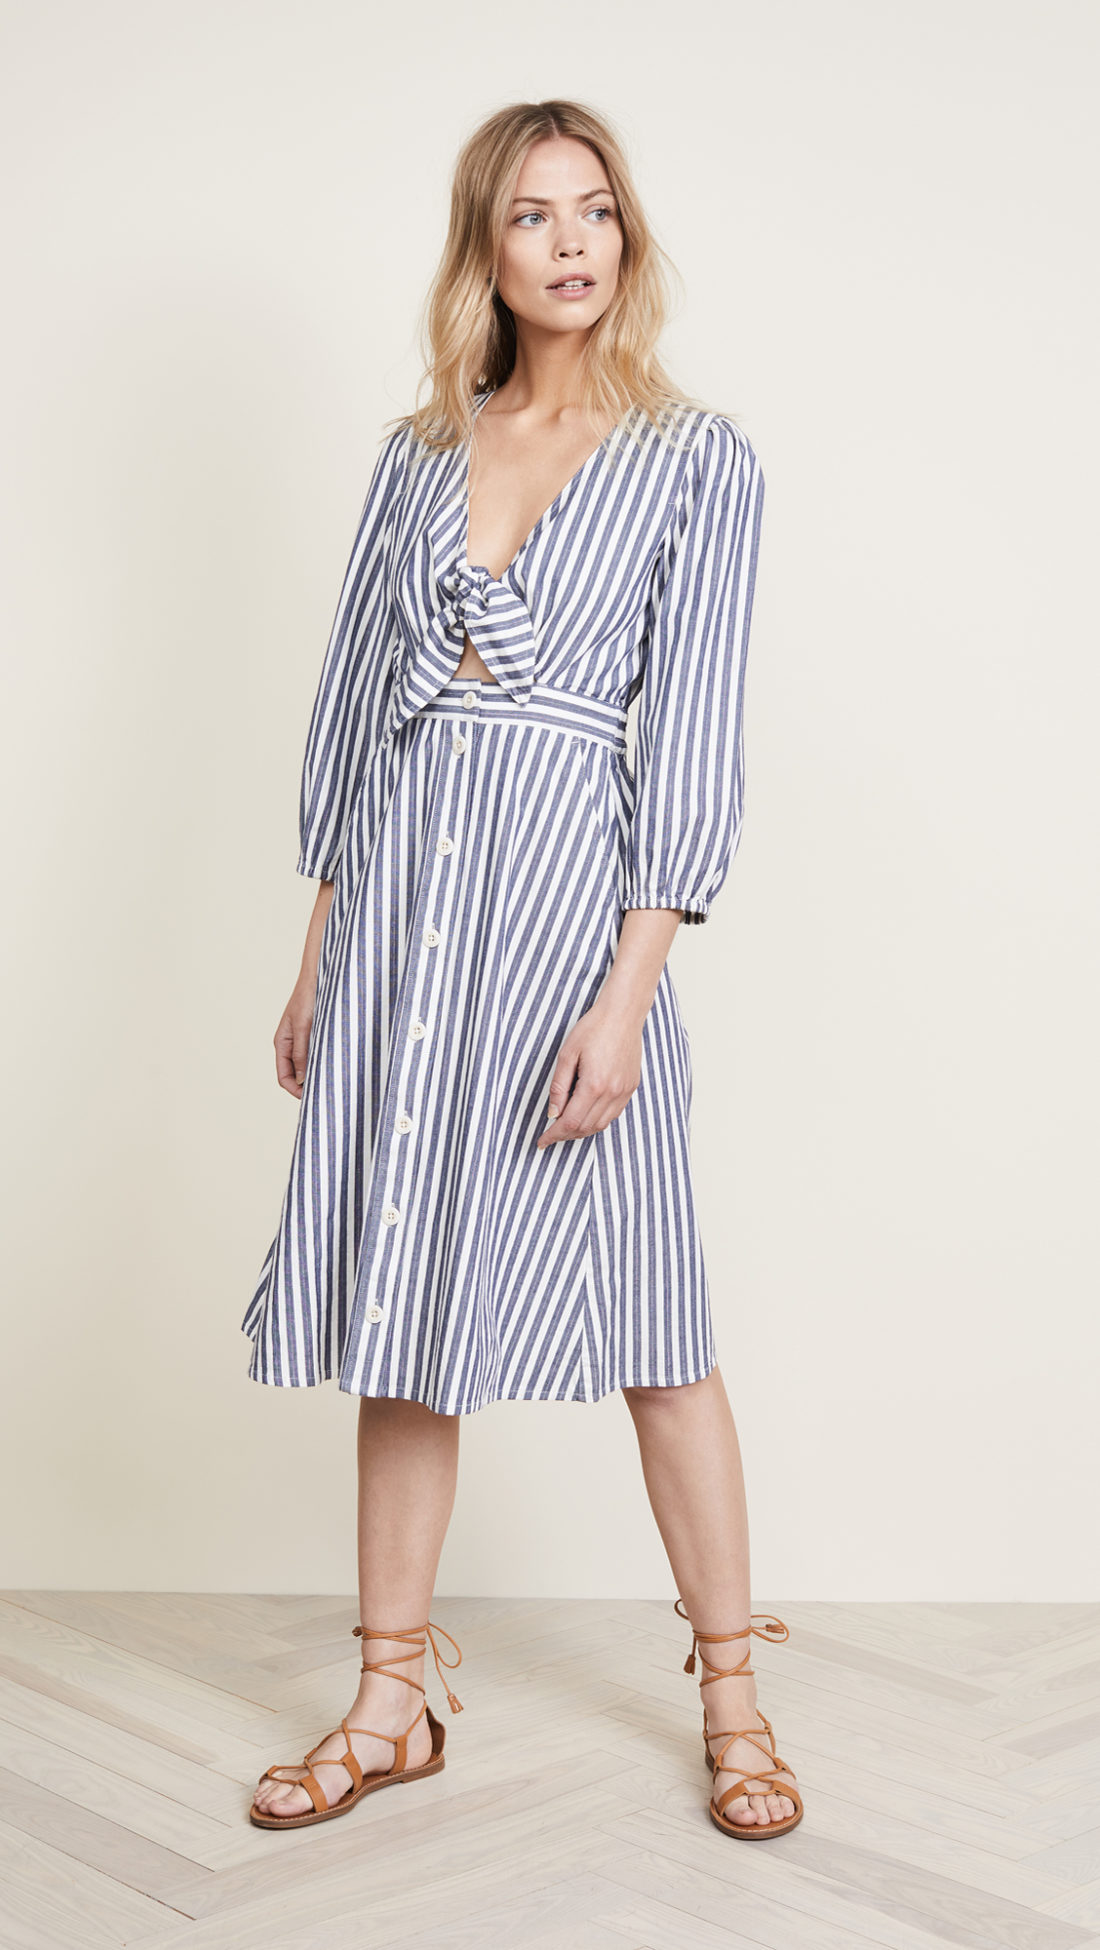 Madewell Shimmer Stripe Cutout Midi Dress  - Shopbop sale recommendations by popular North Carolina fashion blogger Glitter, Inc.